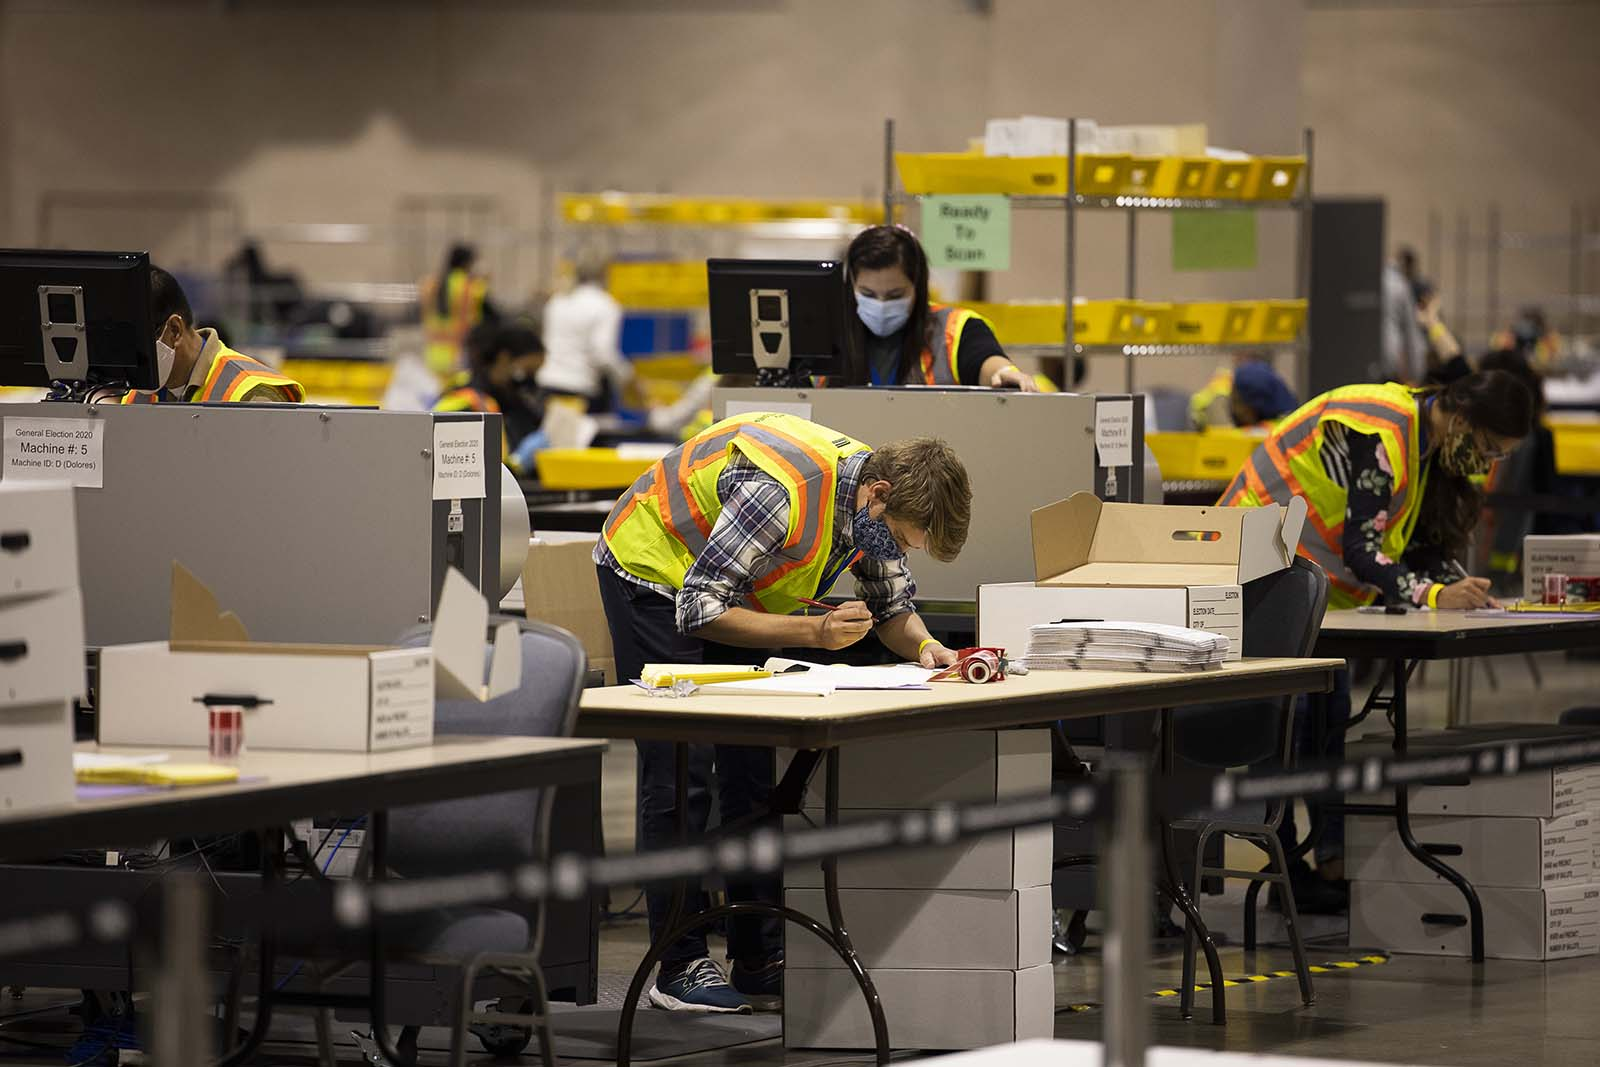 Temporary employees of the City Commissioner's office wearing protective masks count votes at a convention center for the 2020 Presidential election in Philadelphia, Pennsylvania, U.S., on Wednesday, Nov. 4, 2020. Pennsylvania has more than 1 million votes left to count, said its Governor Tom Wolf in a Twitter posting early Wednesday morning. Photographer: Ryan Collerd/Bloomberg via Getty Images